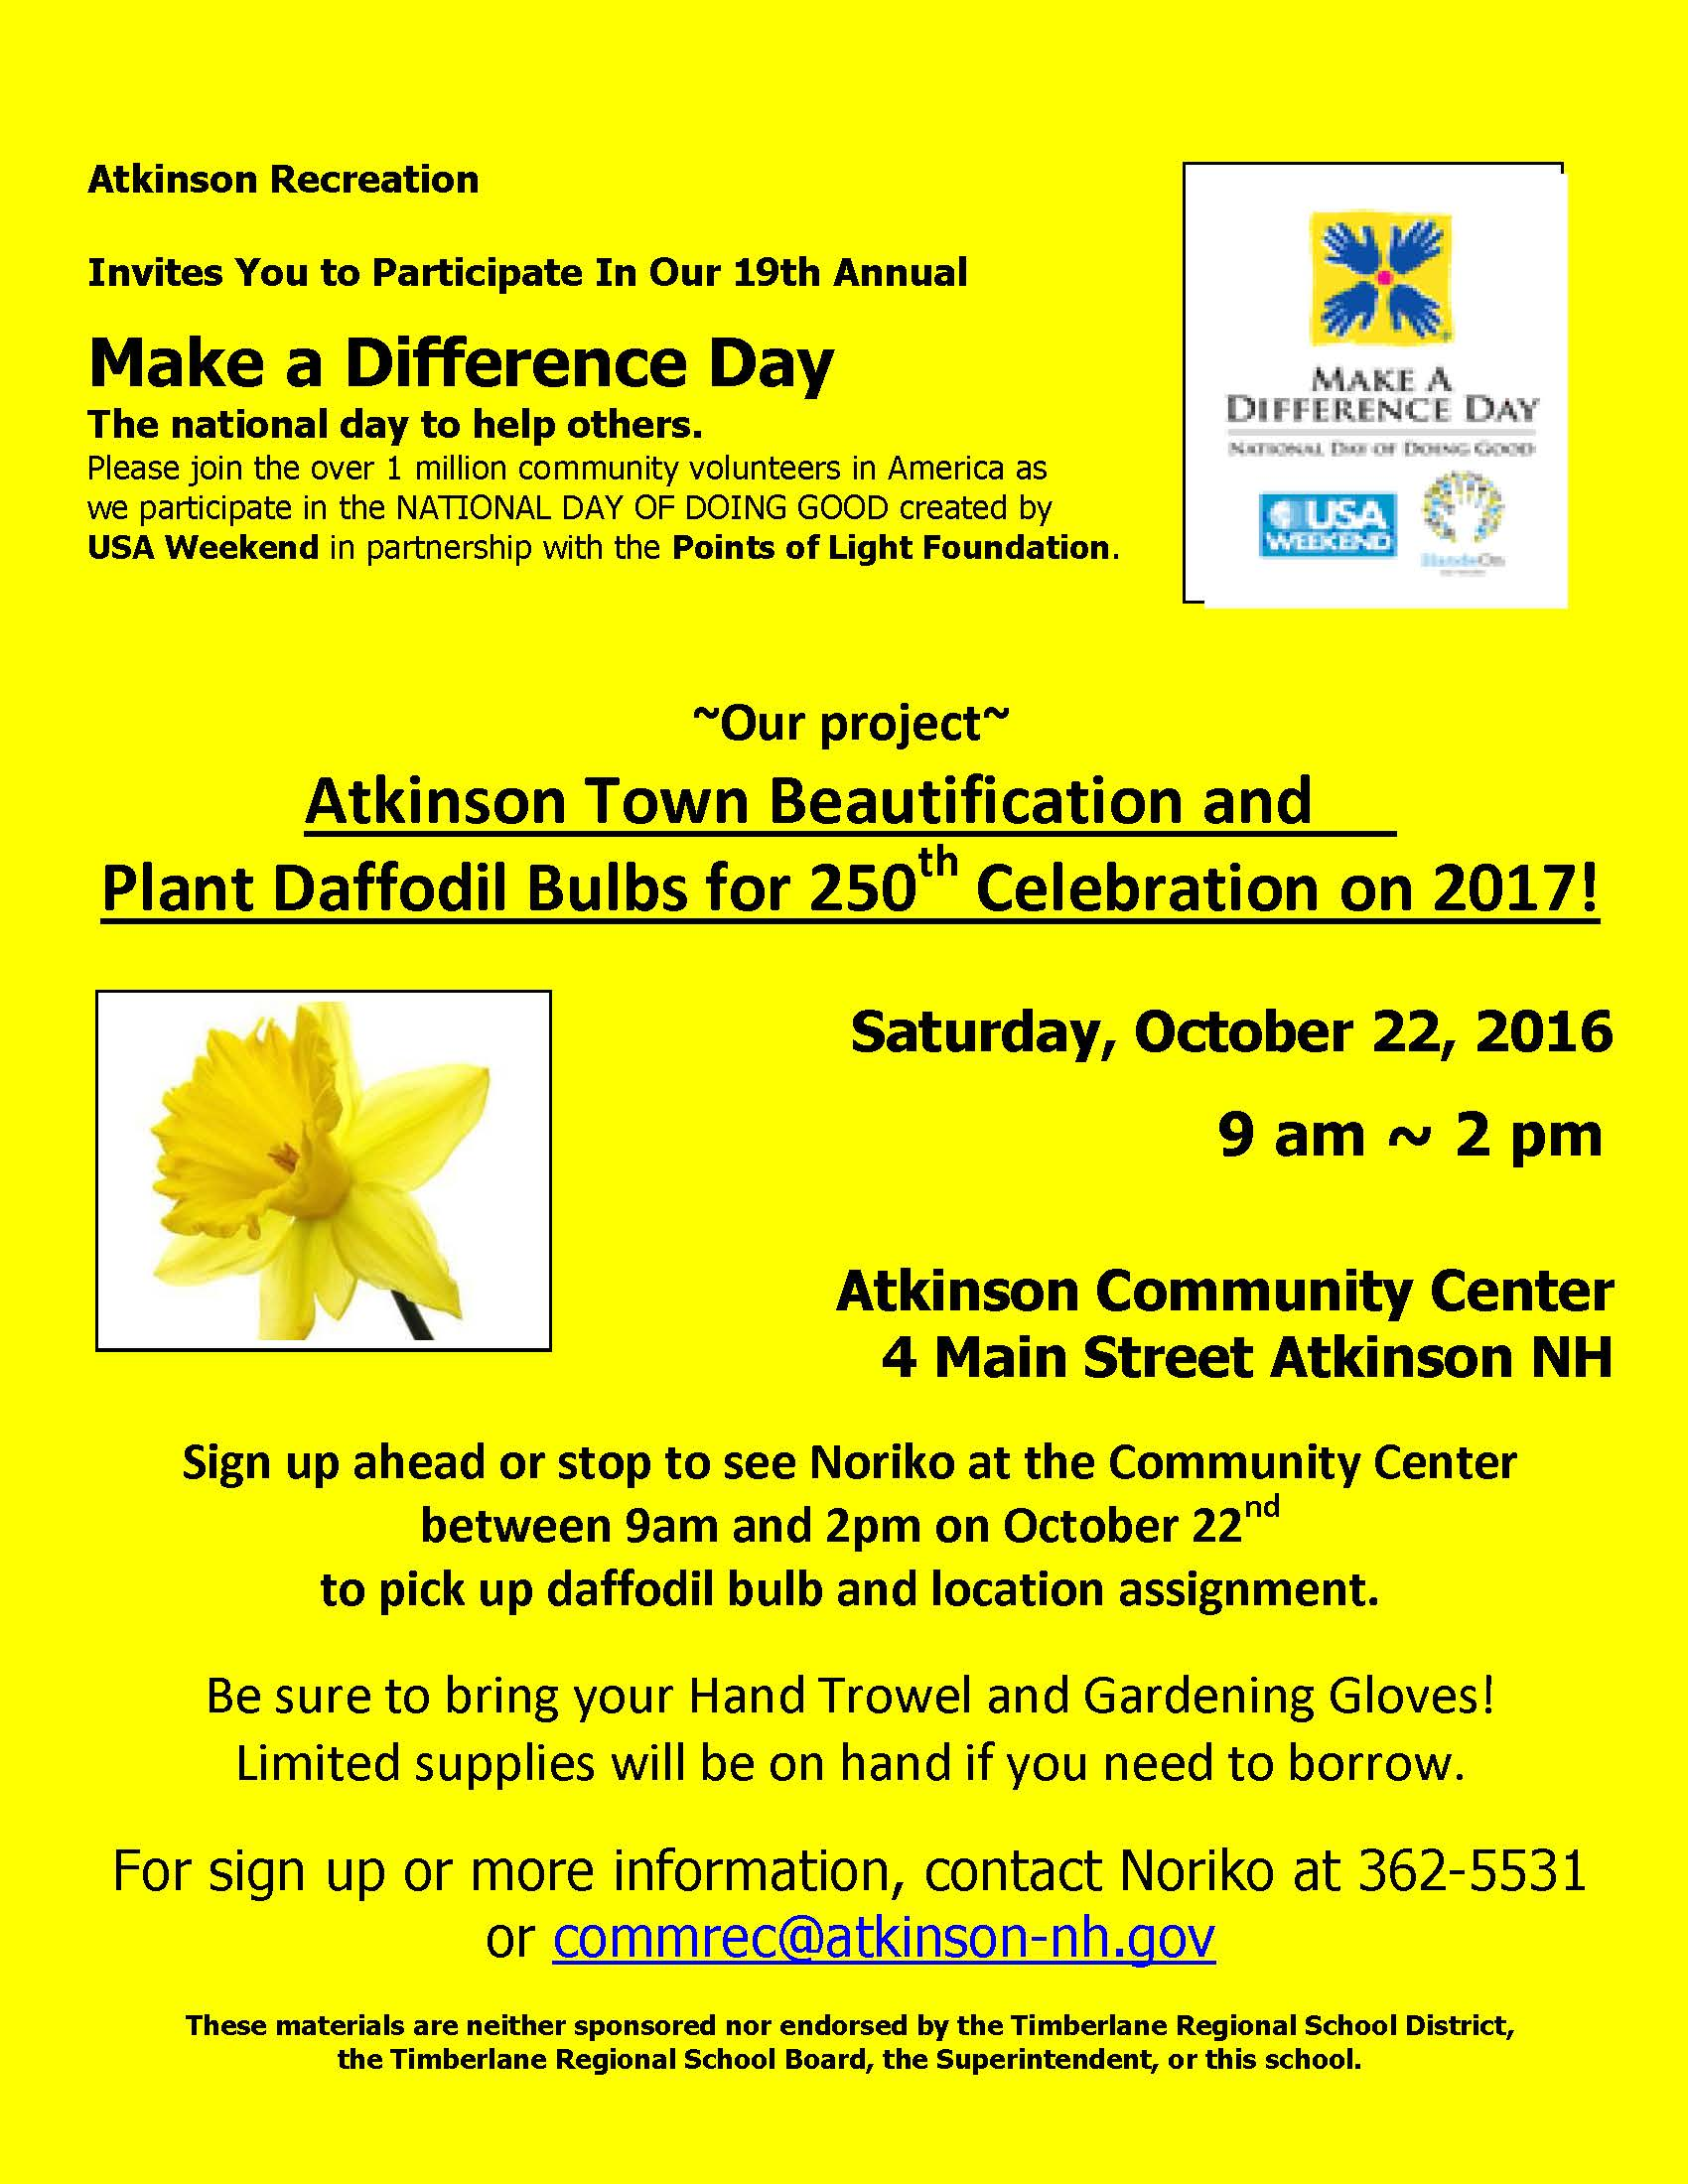 Make a Difference Day 10/22 9 - 2